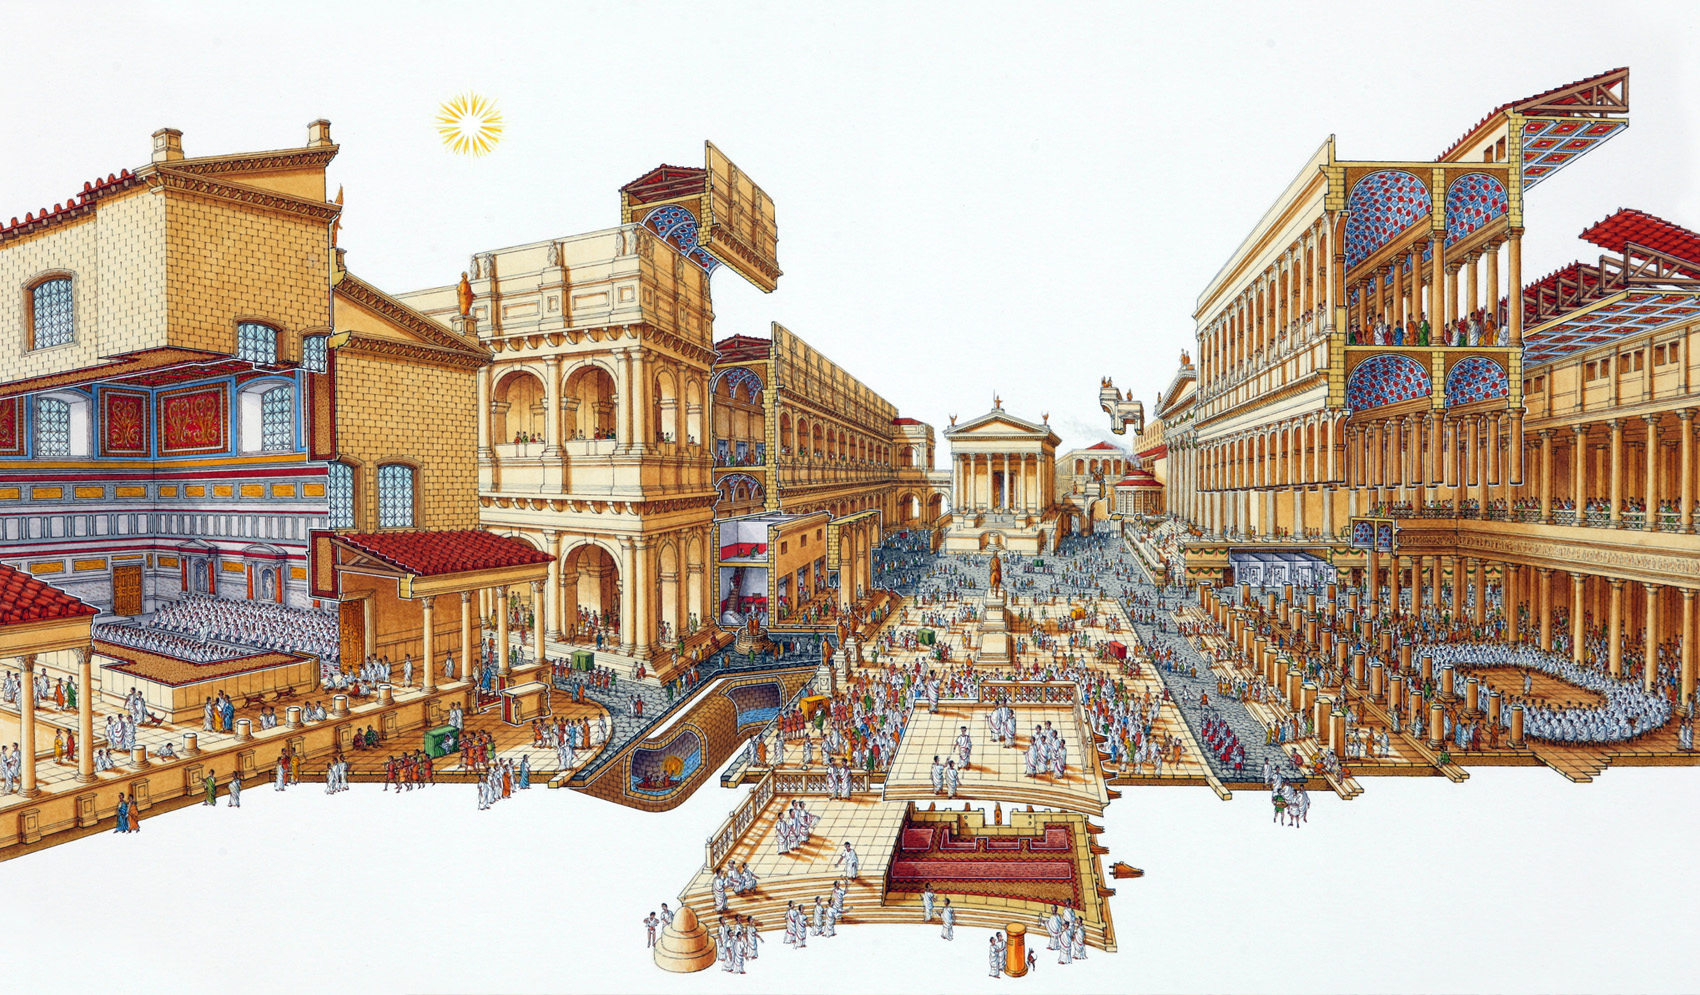 Stephen Biesty Illustrator Exploded Views Roman Forum